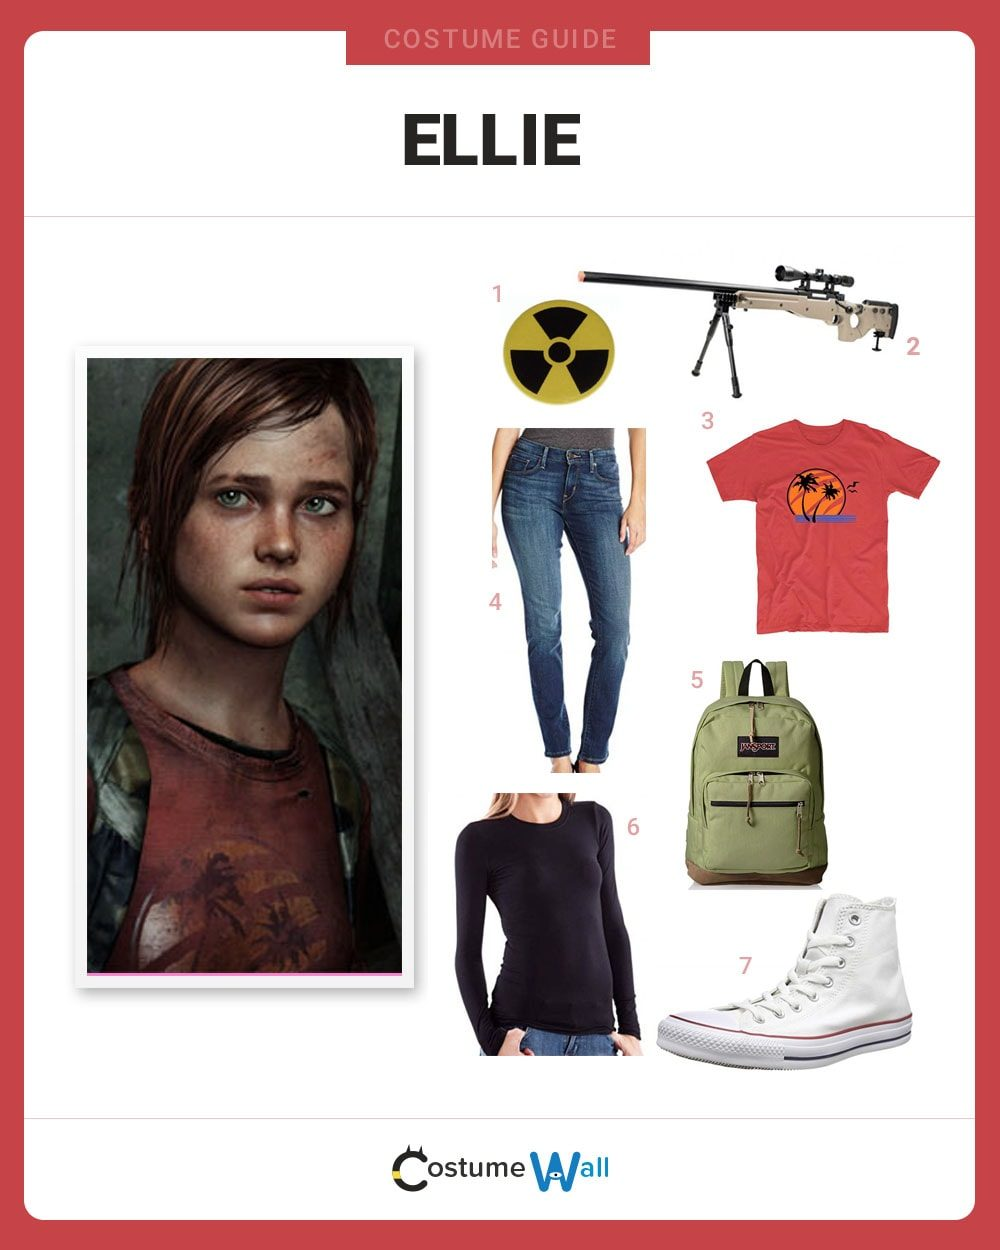 Ellie Costume Guide